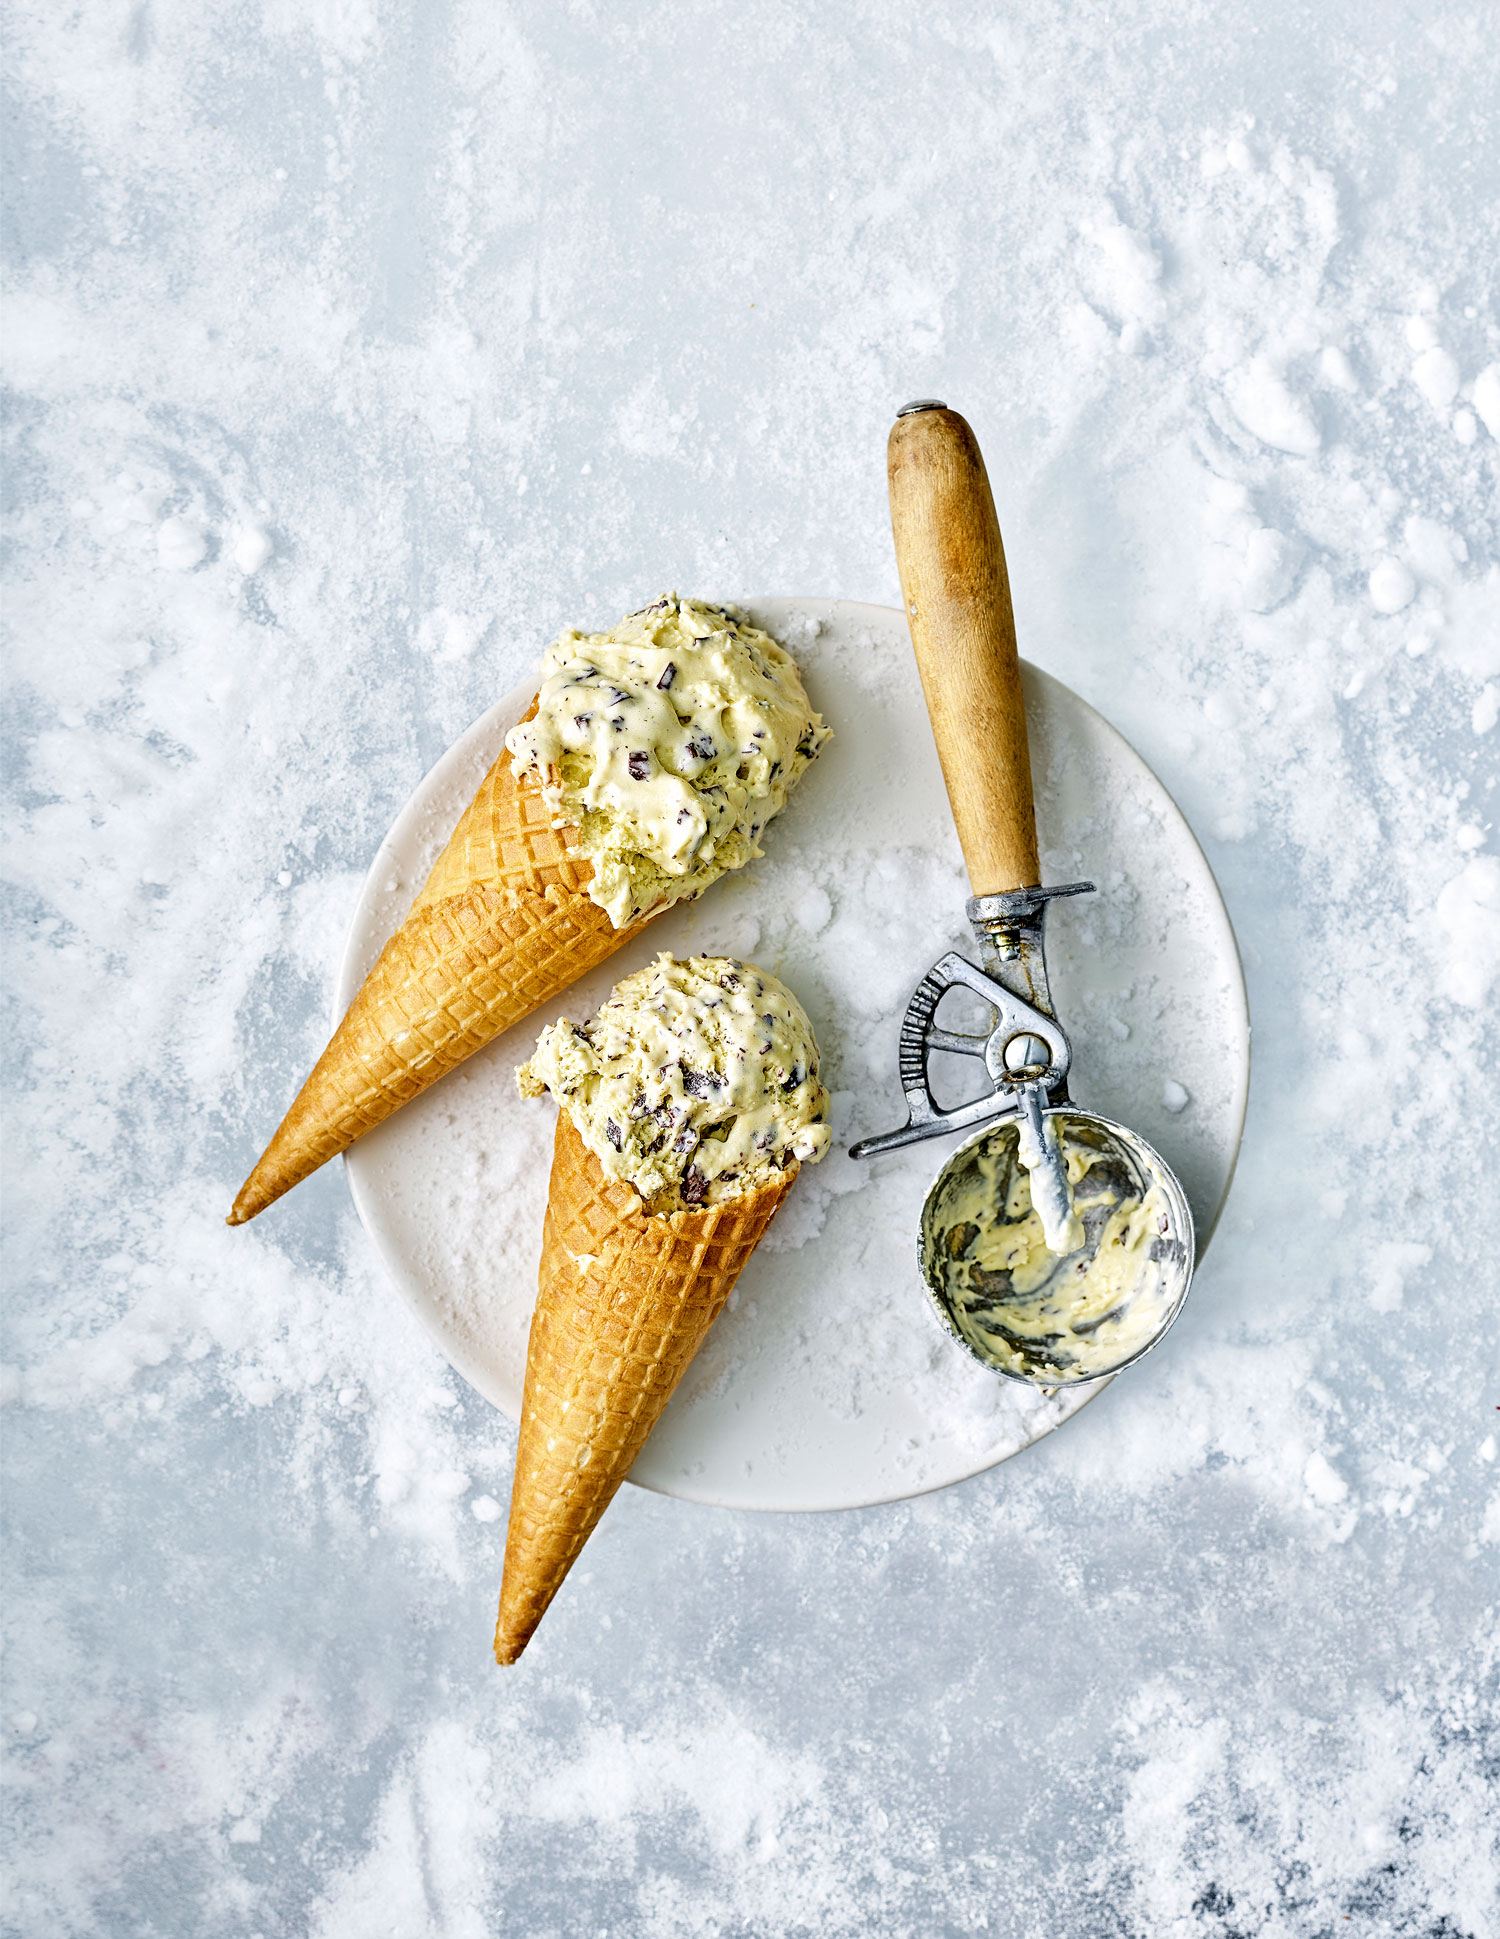 Rosemary-and-salted-chocolate-ice-cream copy